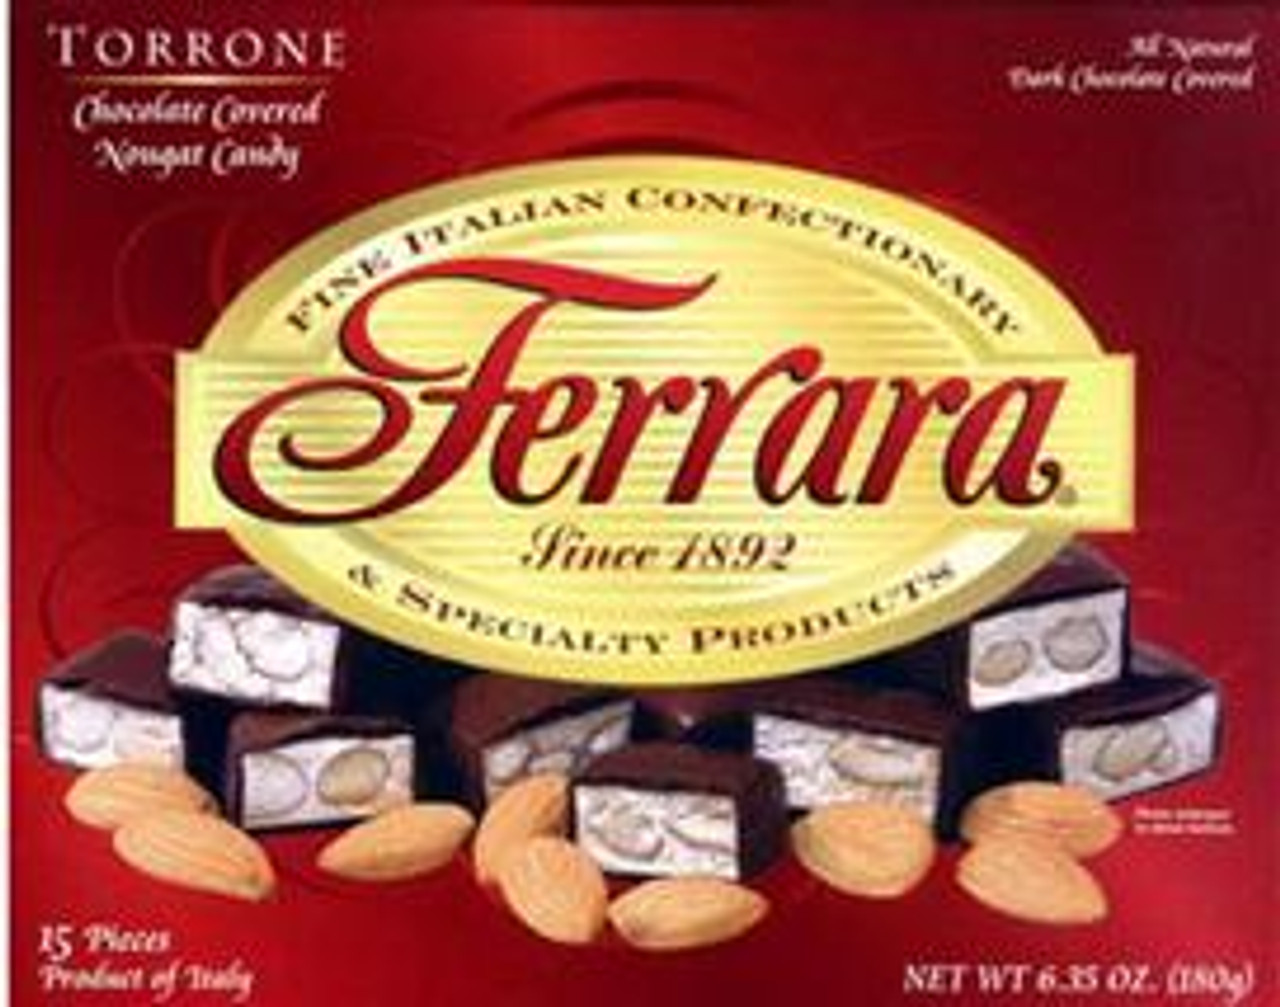 Ferrara Chocolate Covered Torrone